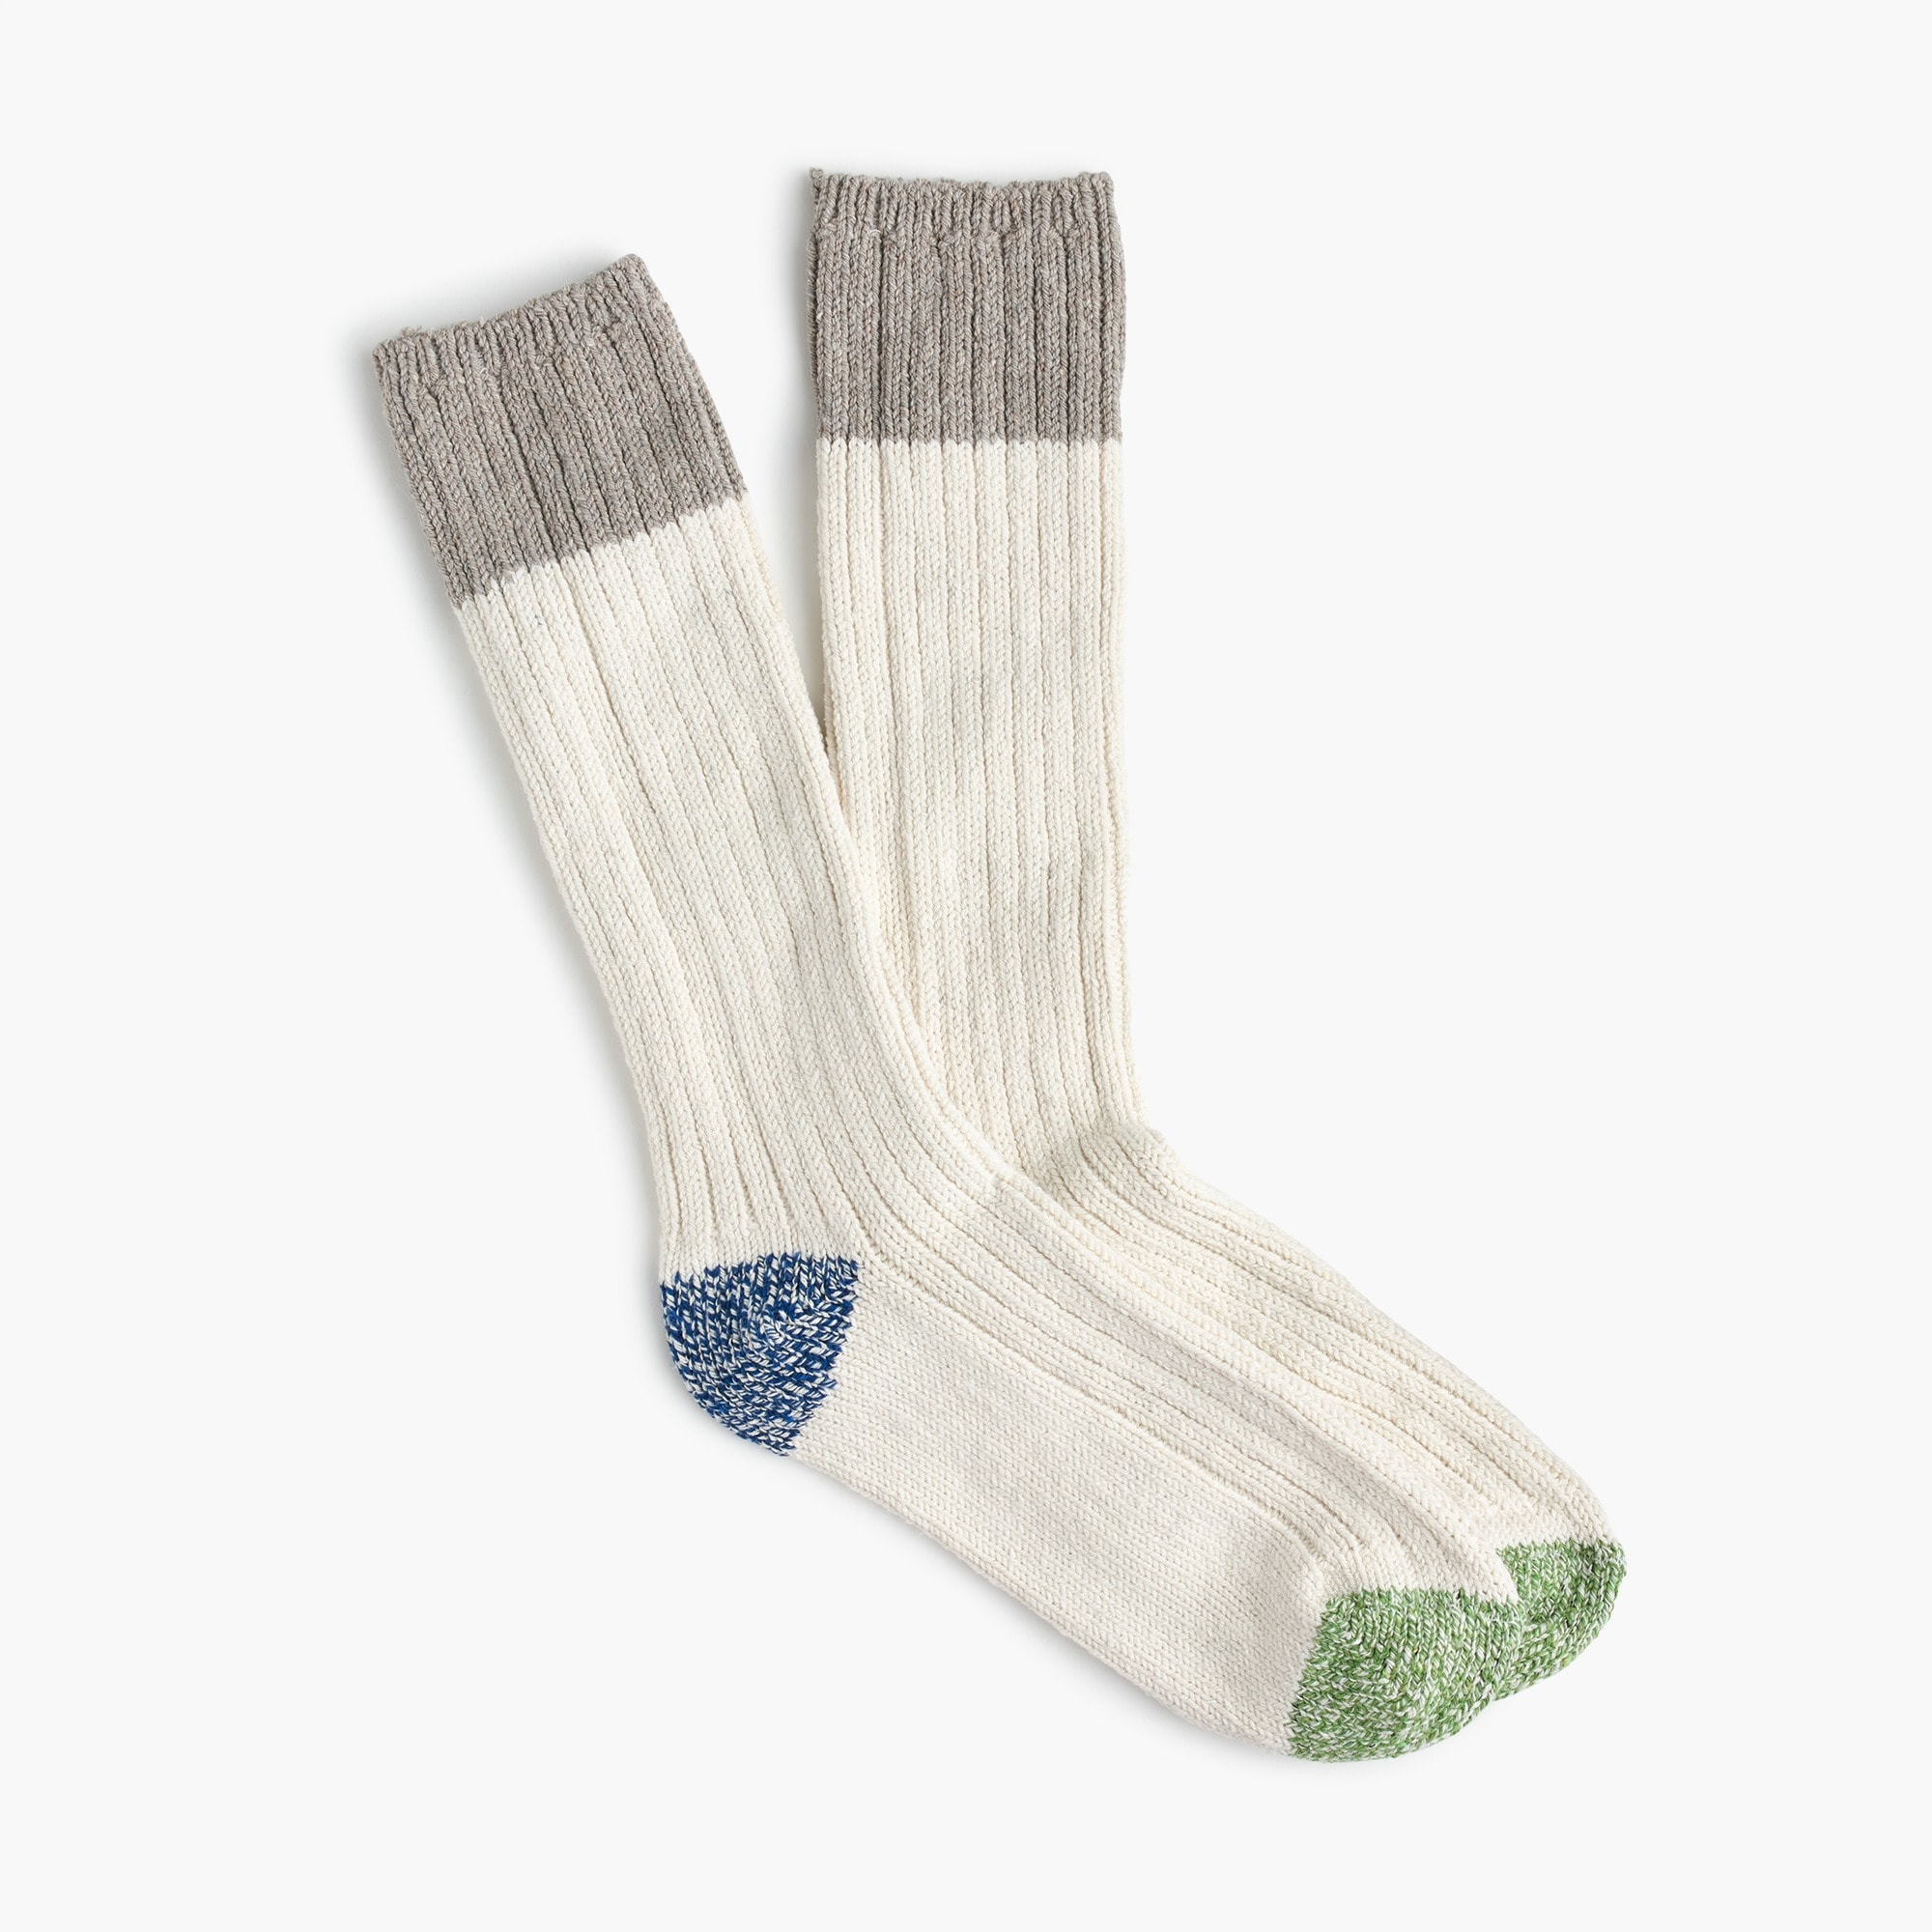 Camp socks in blue-green